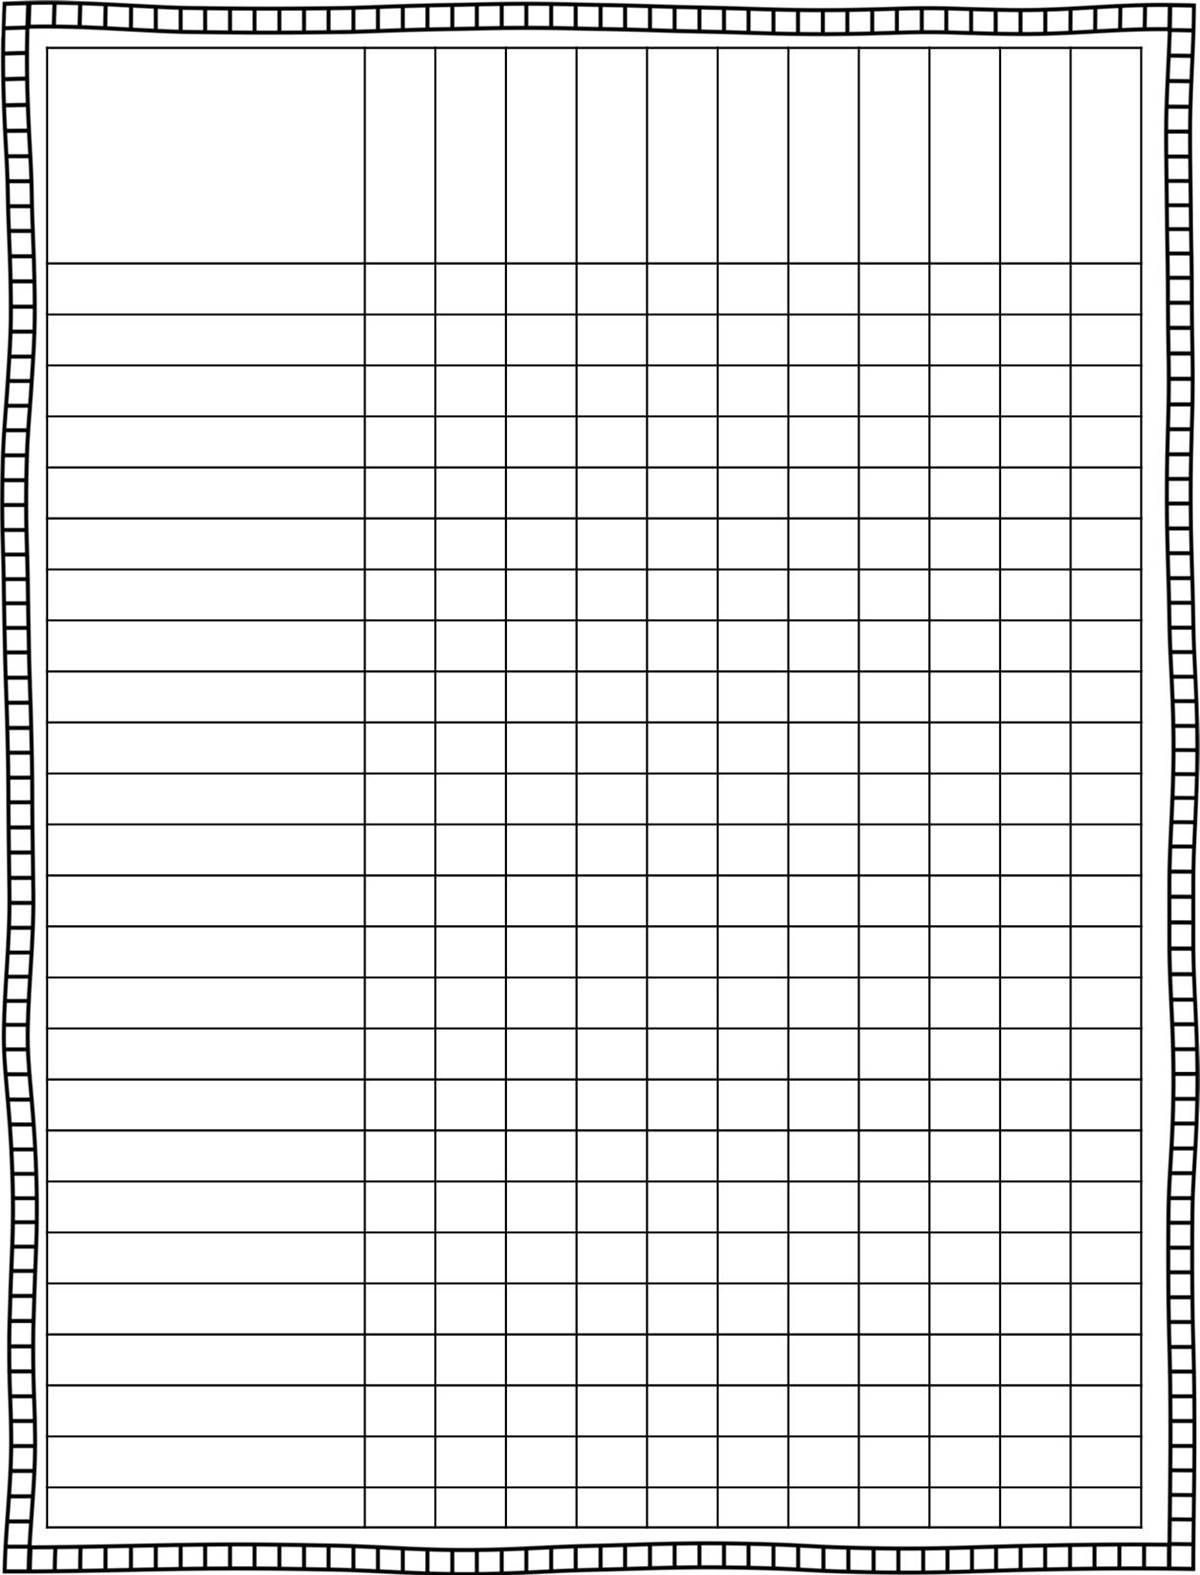 Classroom Schedule Template For Teachers | Finally, A Cute Lesson - Free Printable Gradebook Sheets For Teachers